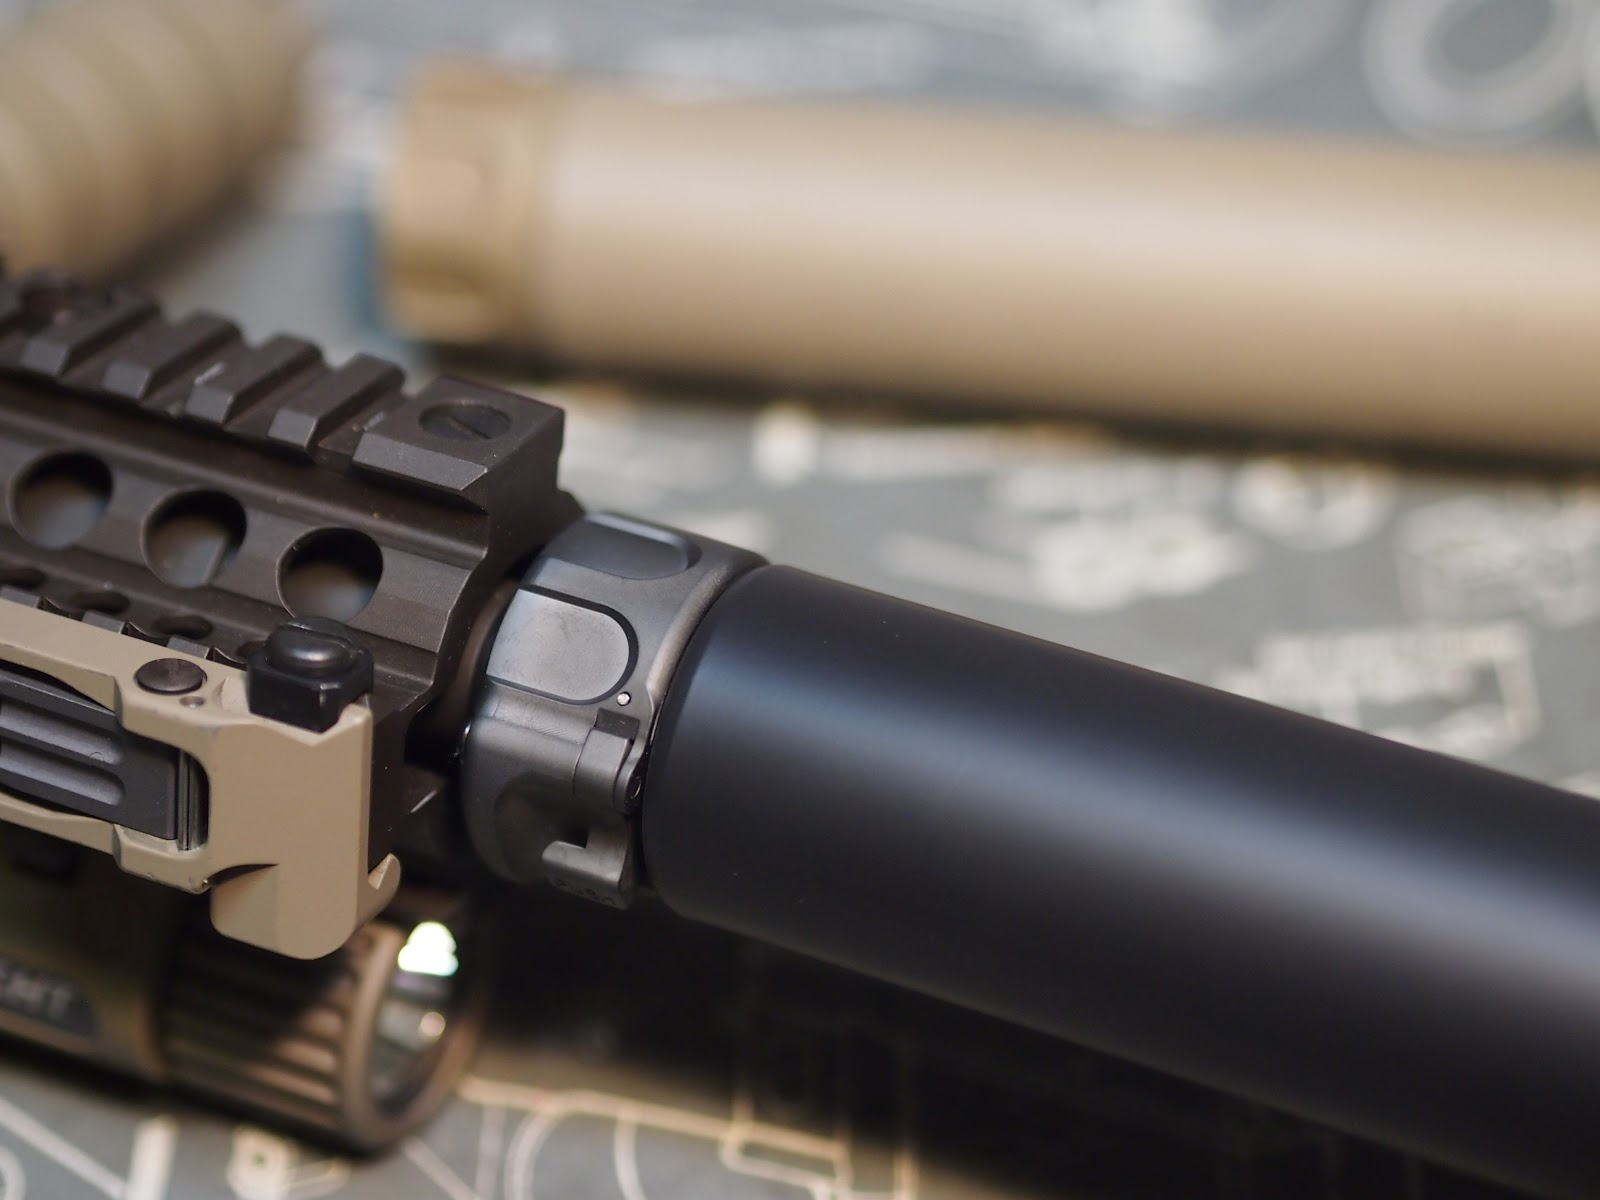 Mister Donut's Firearms Blog: Surefire 7 62 Training Suppressor with